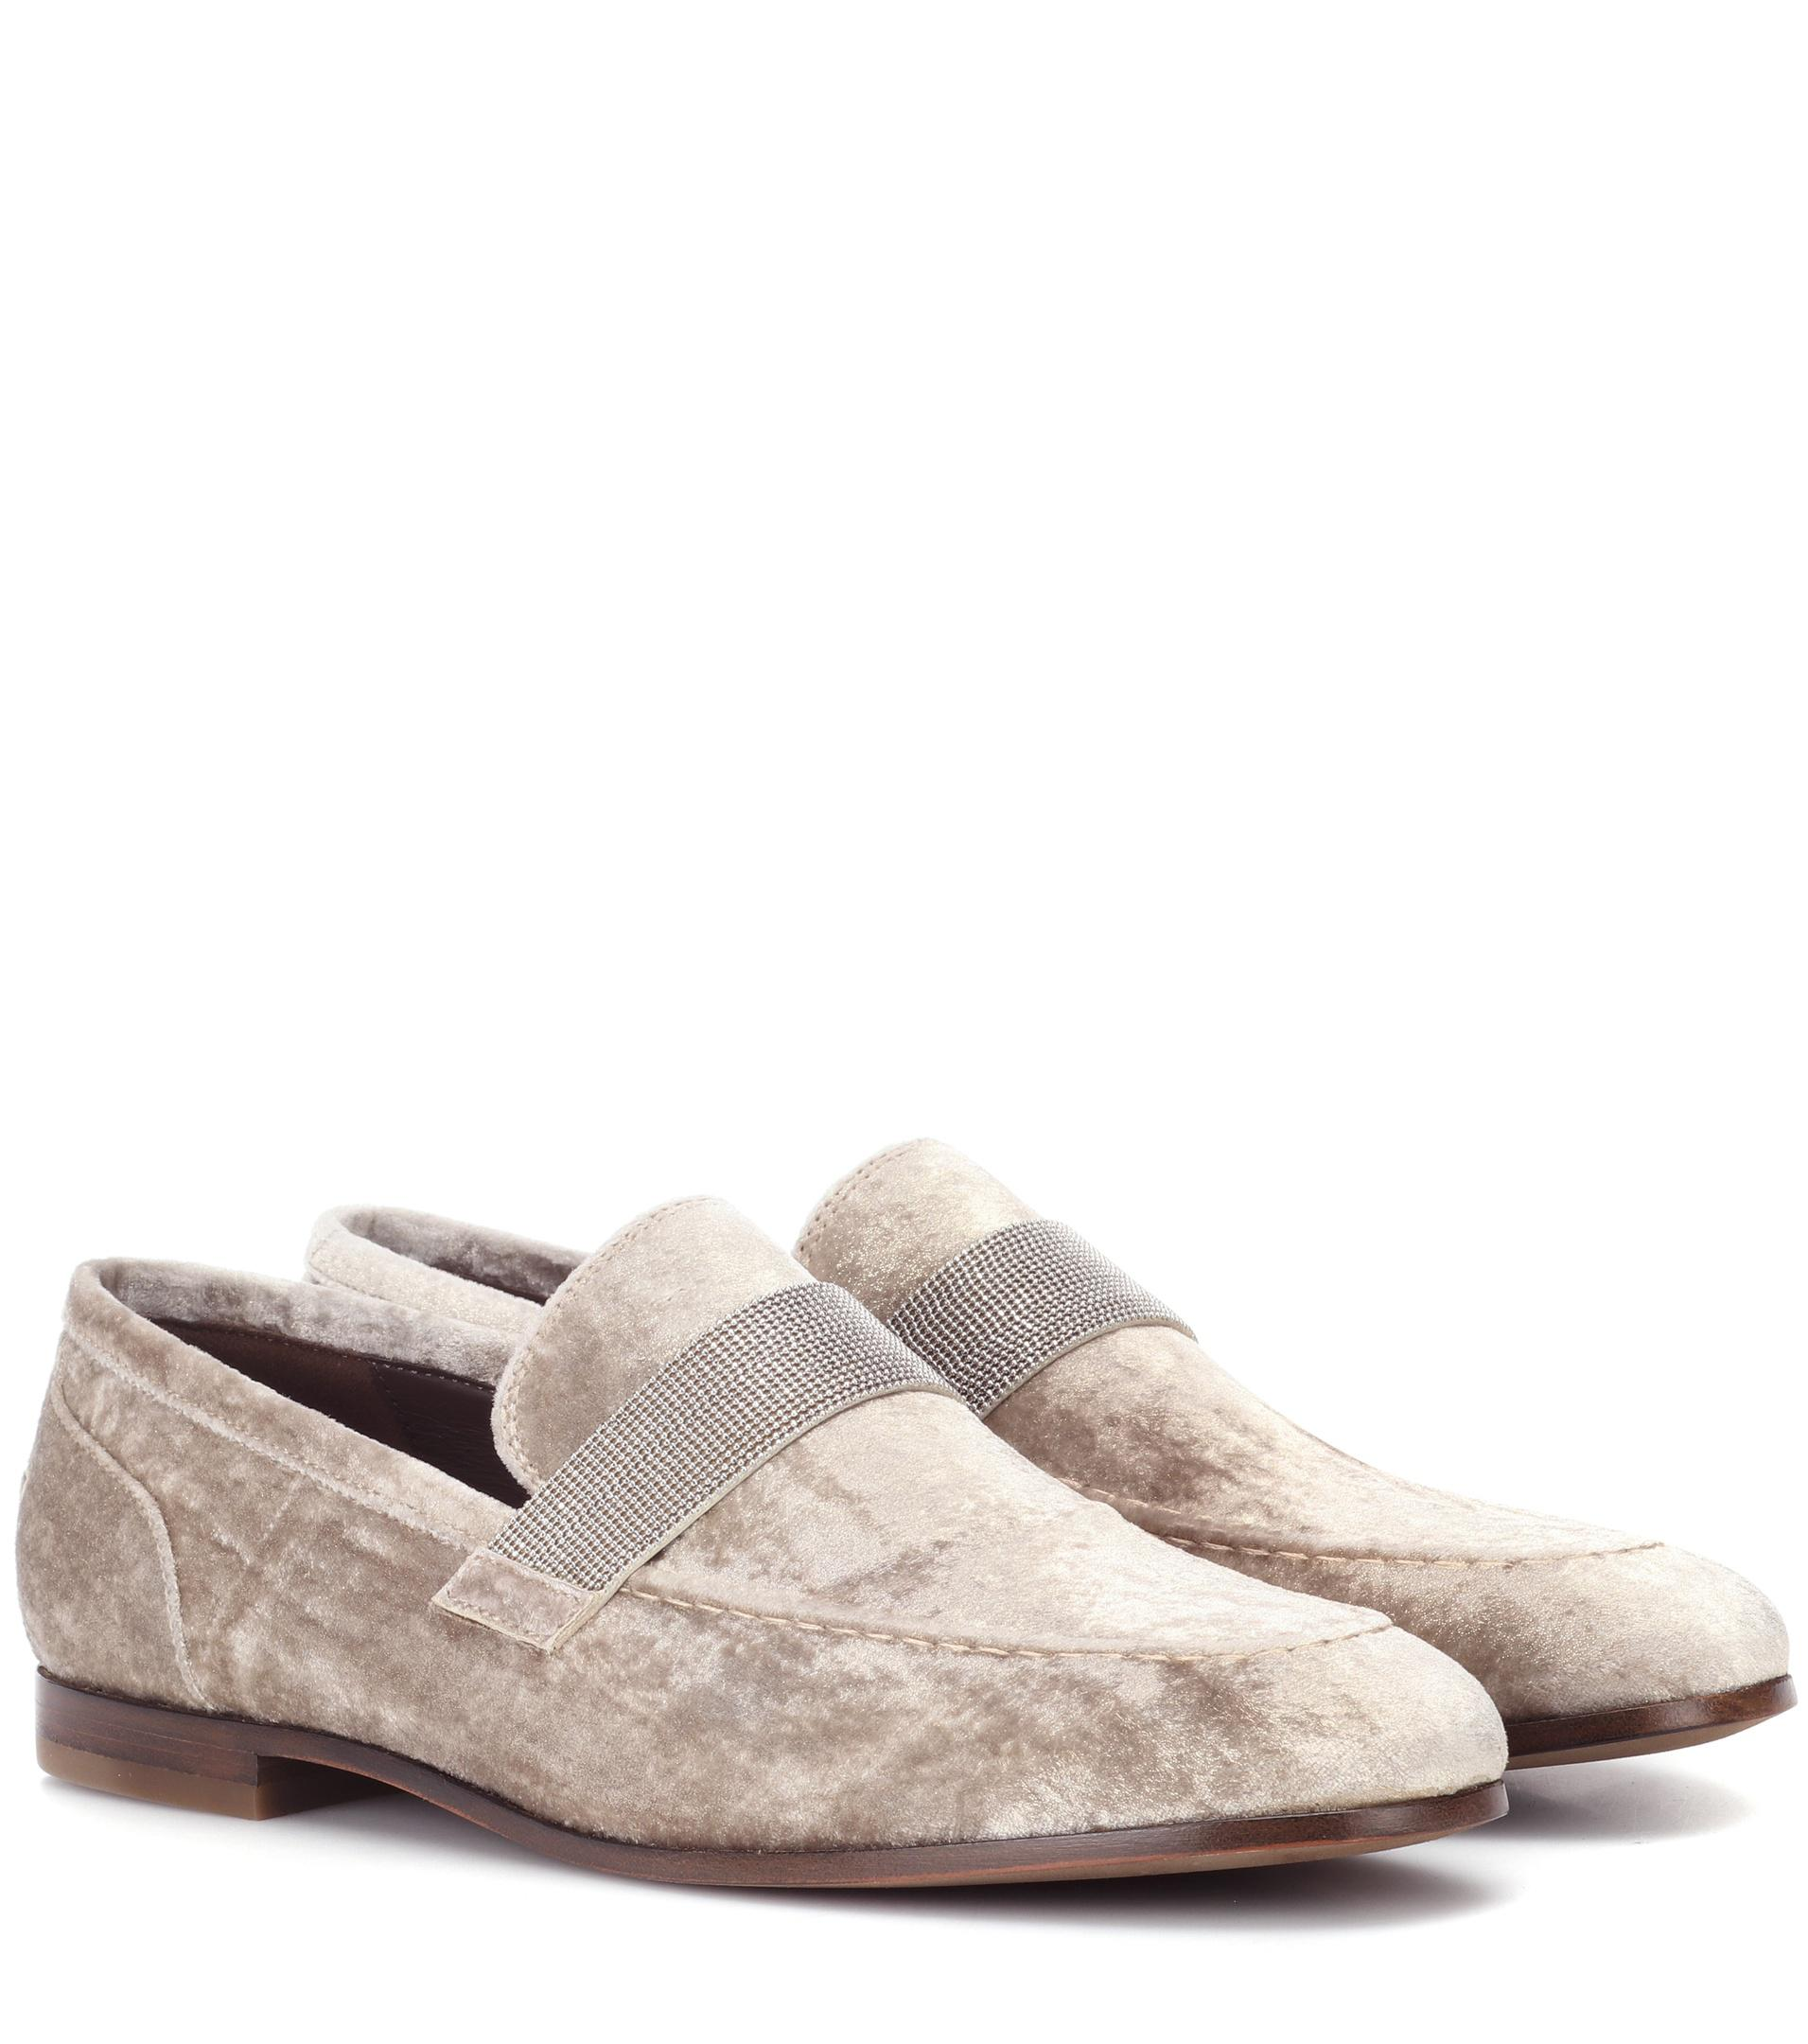 Brunello Cucinelli Velvet slippers free shipping under $60 discount choice sale with paypal cheap high quality nESifnMfZc